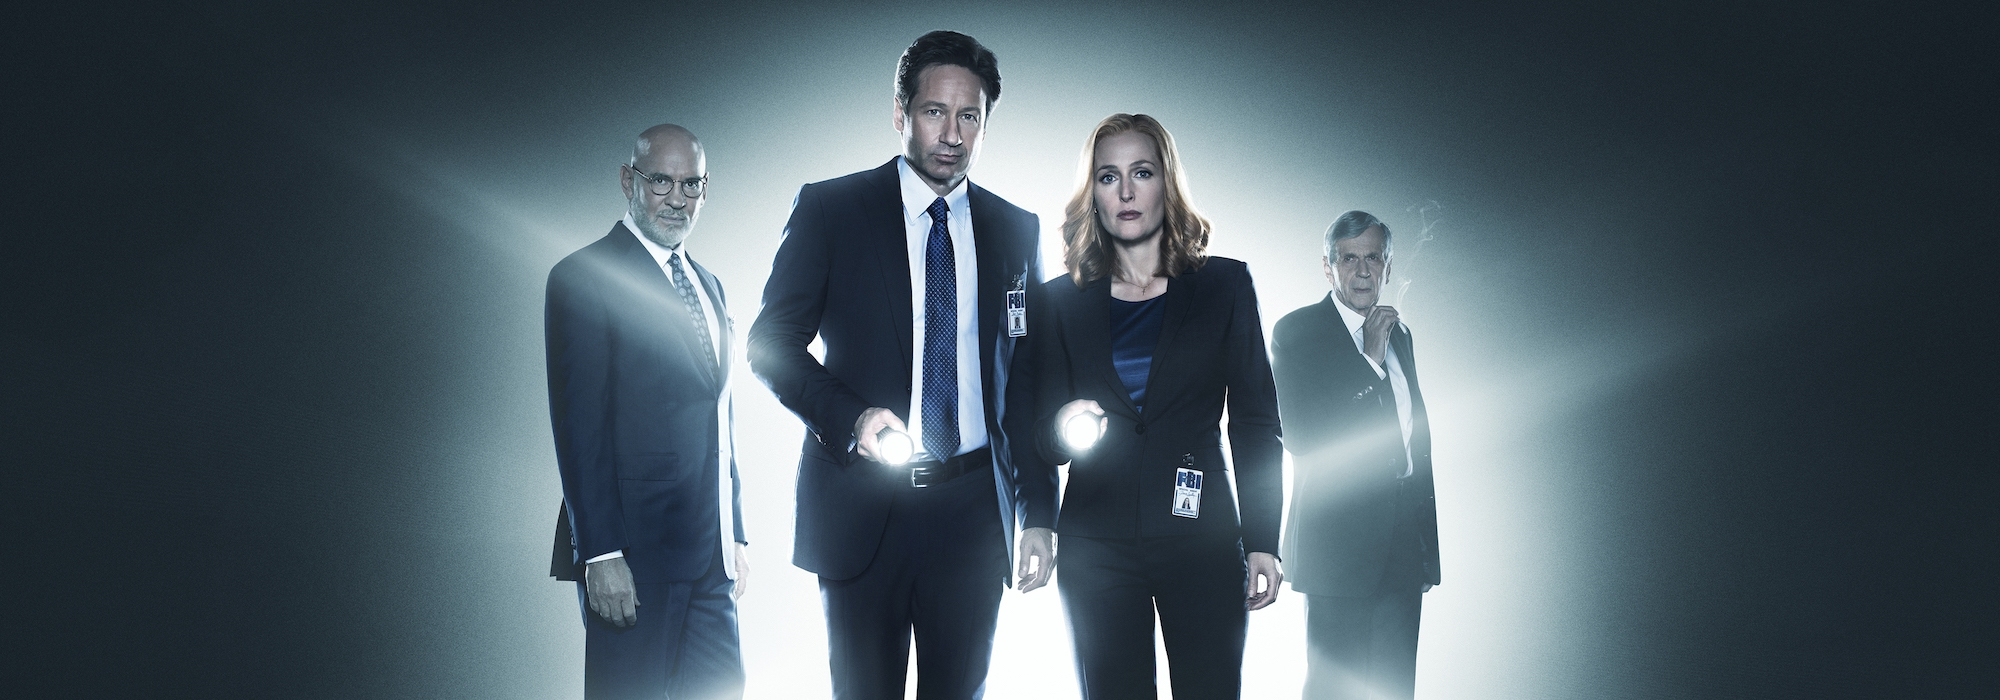 Review: X-Files Revival, Episodes 1 and 2